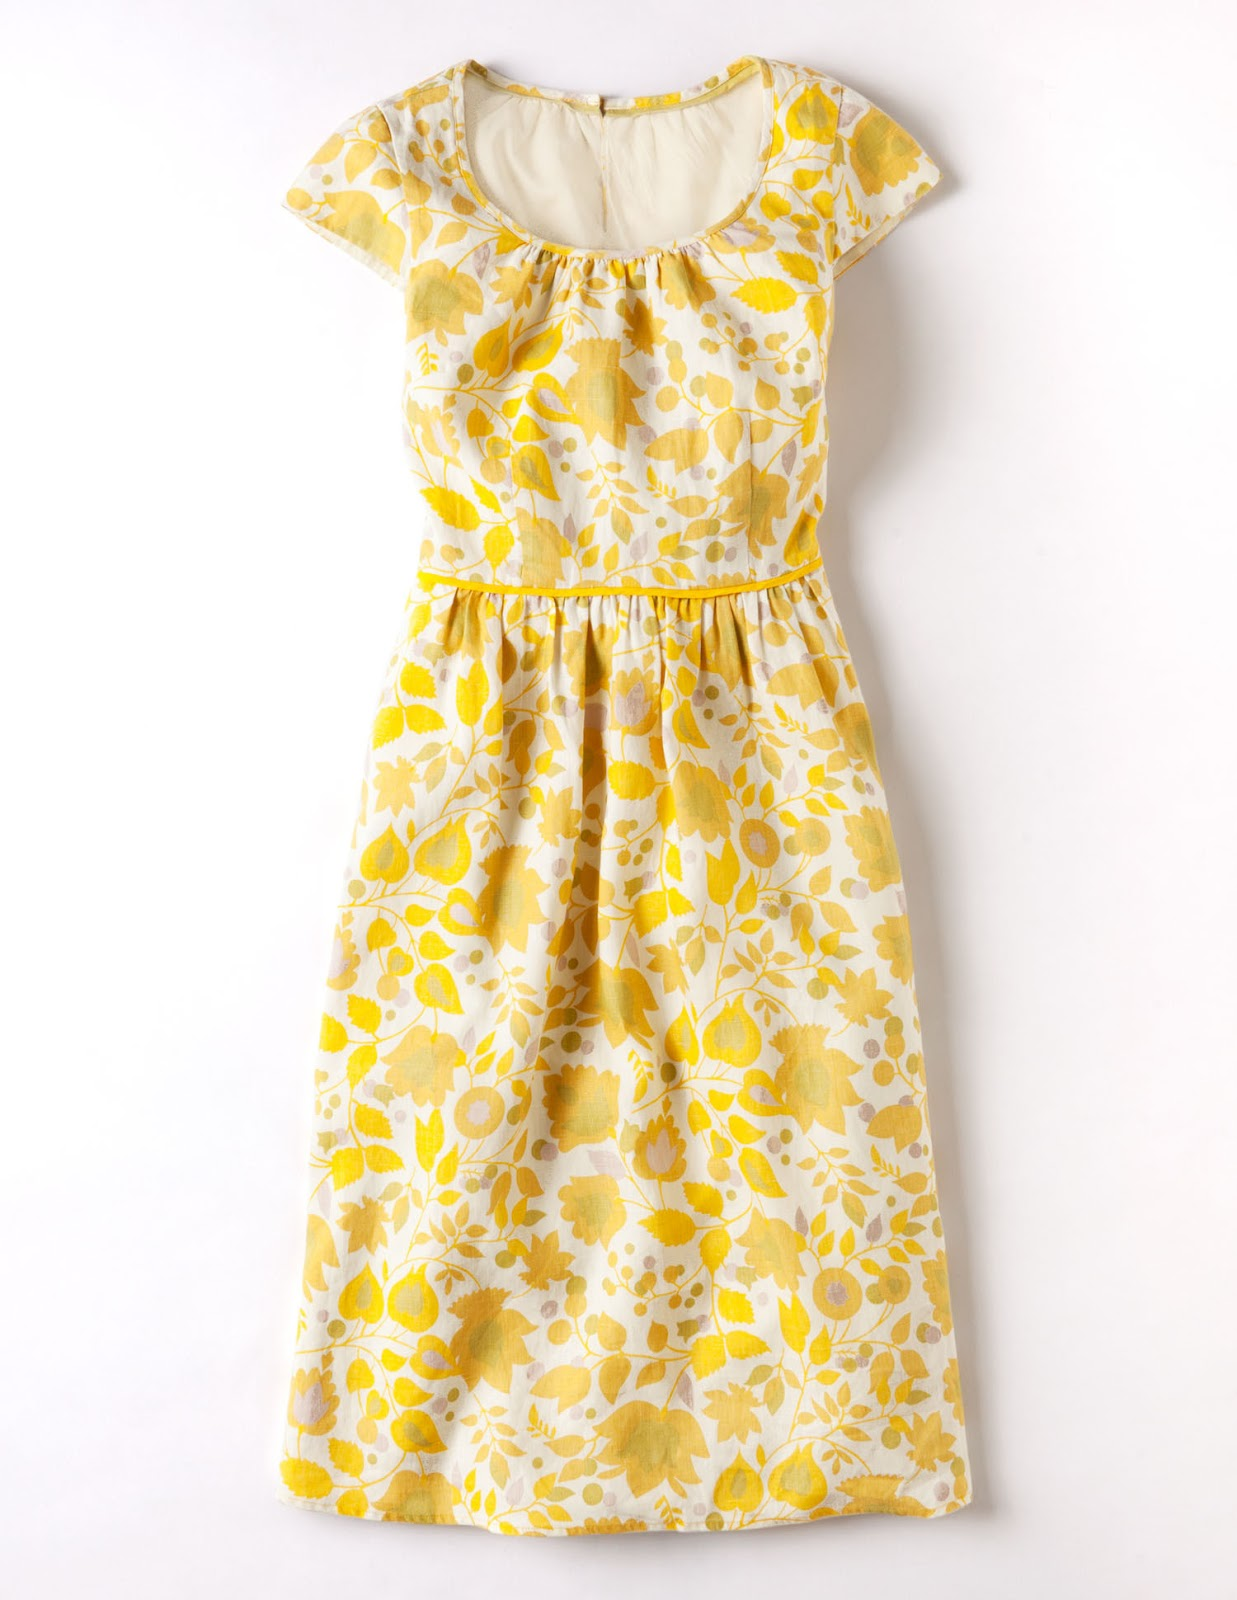 Breakfast at anthropologie boden sale now up to 70 off for Boden yellow coat